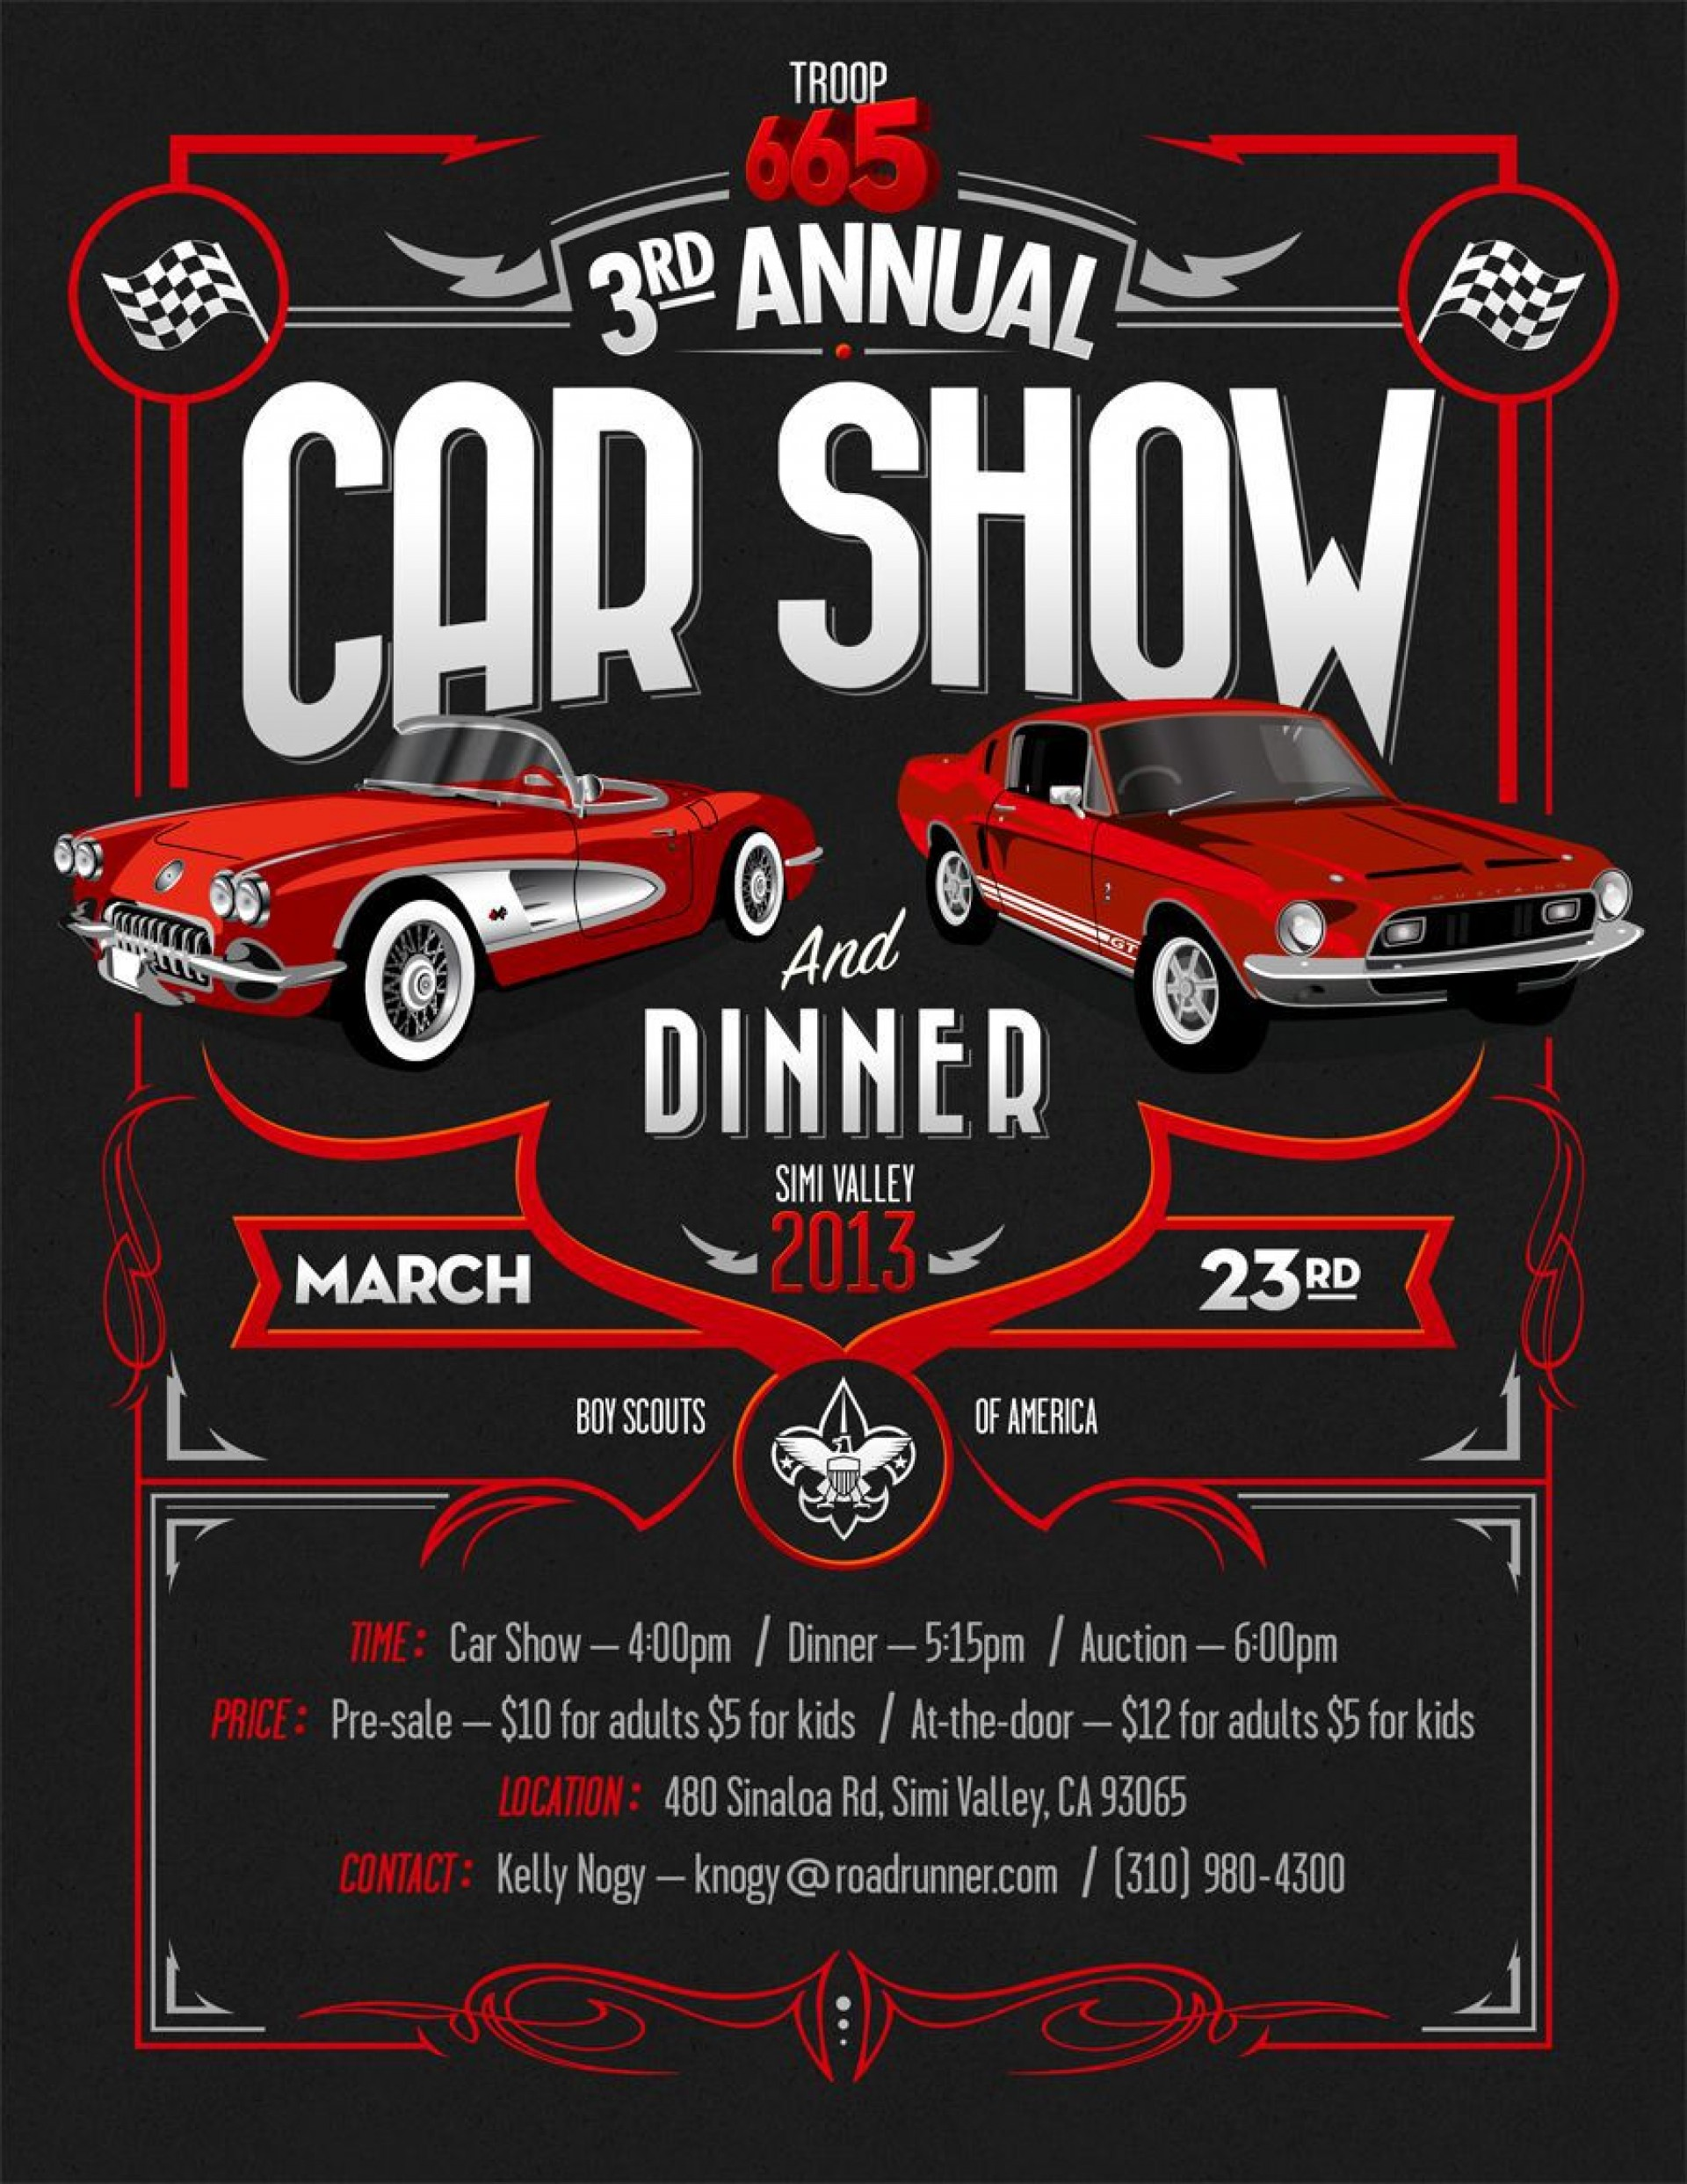 000 Impressive Free Car Show Flyer Template Highest Clarity  Psd And Bike1920